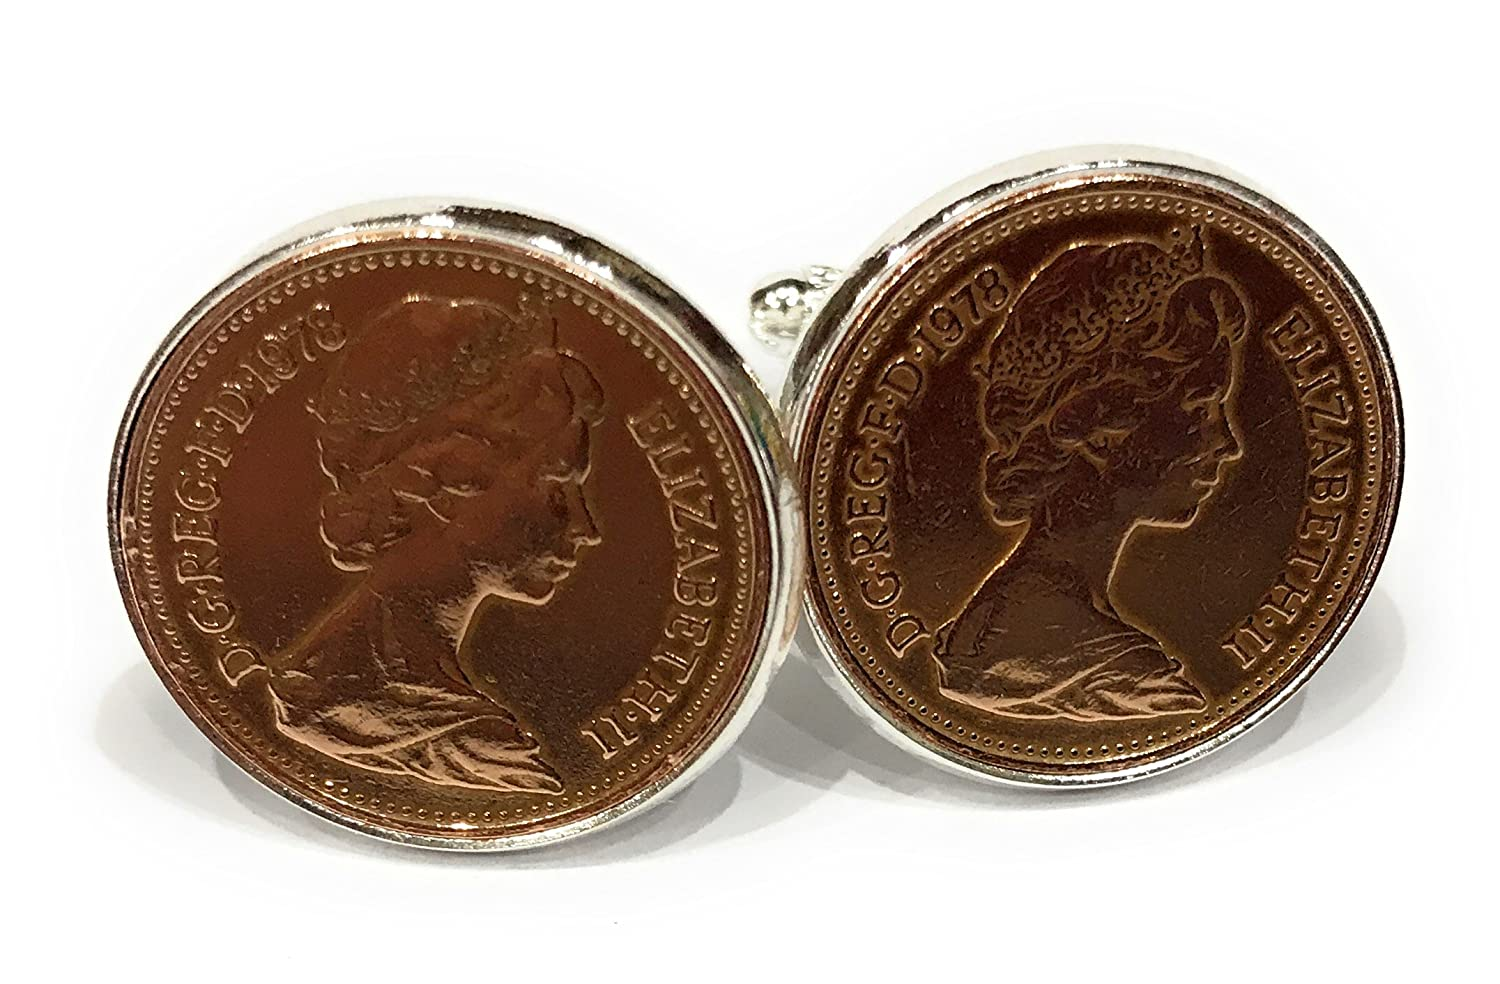 1978 40th Birthday/Anniversary 1 pence coin cufflinks - One pence cufflinks from 1978 for a 40th rstrading 1974onepencecuff